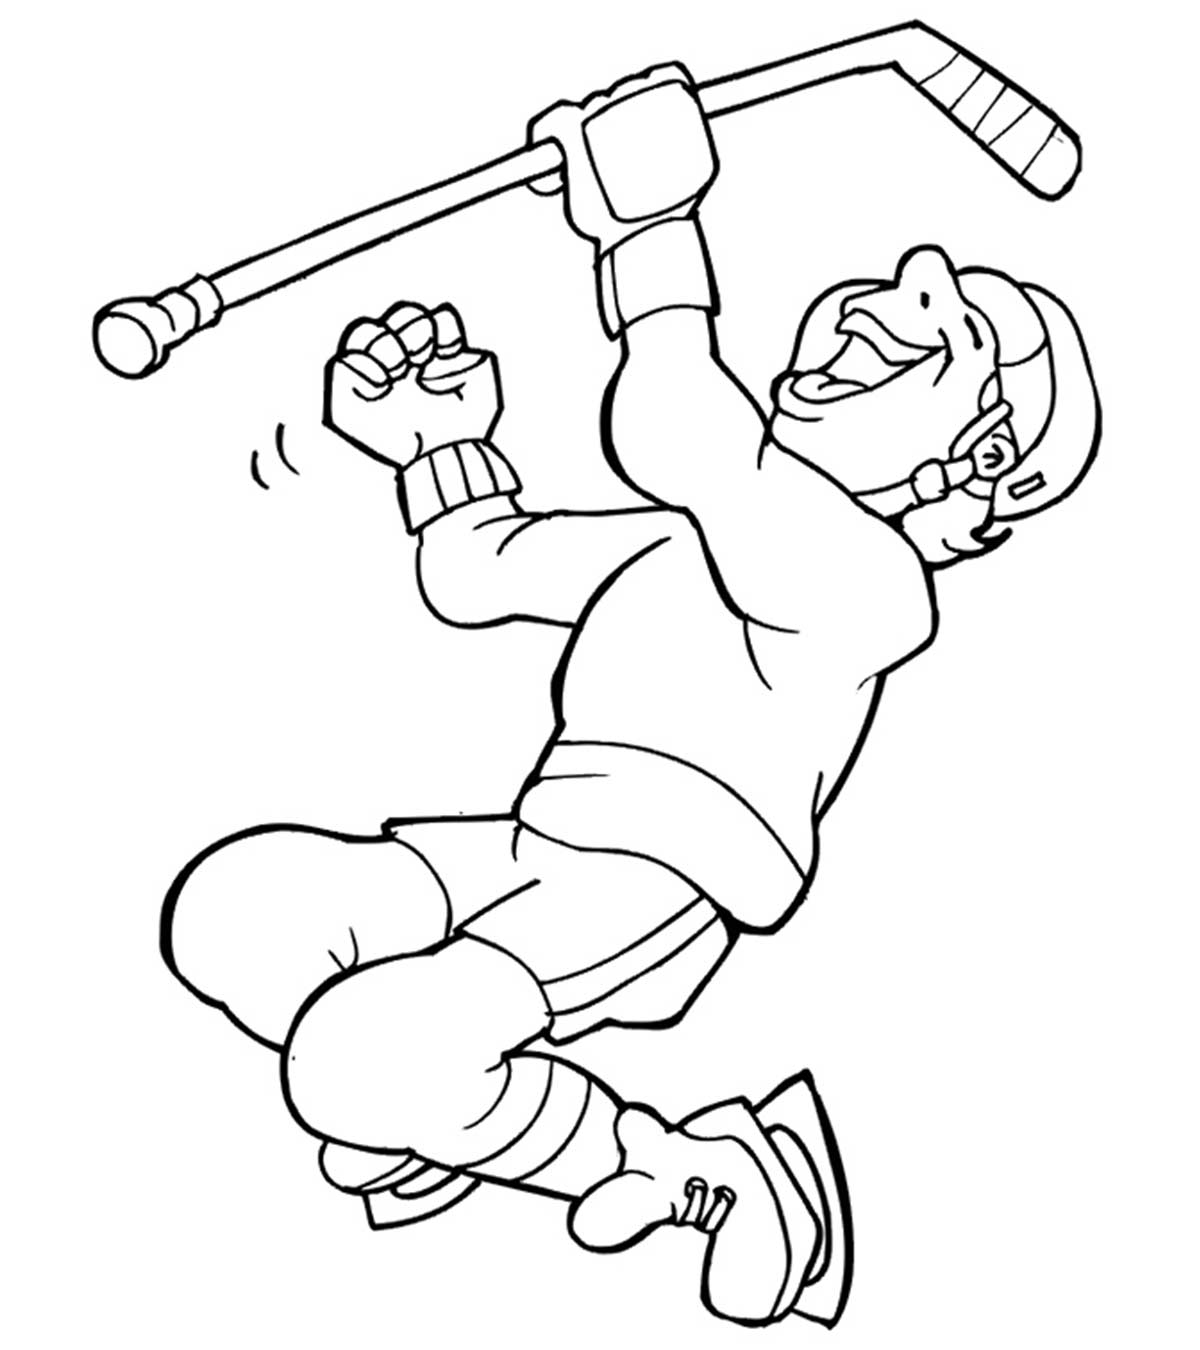 hockey pictures to color sports coloring pages momjunction to hockey pictures color